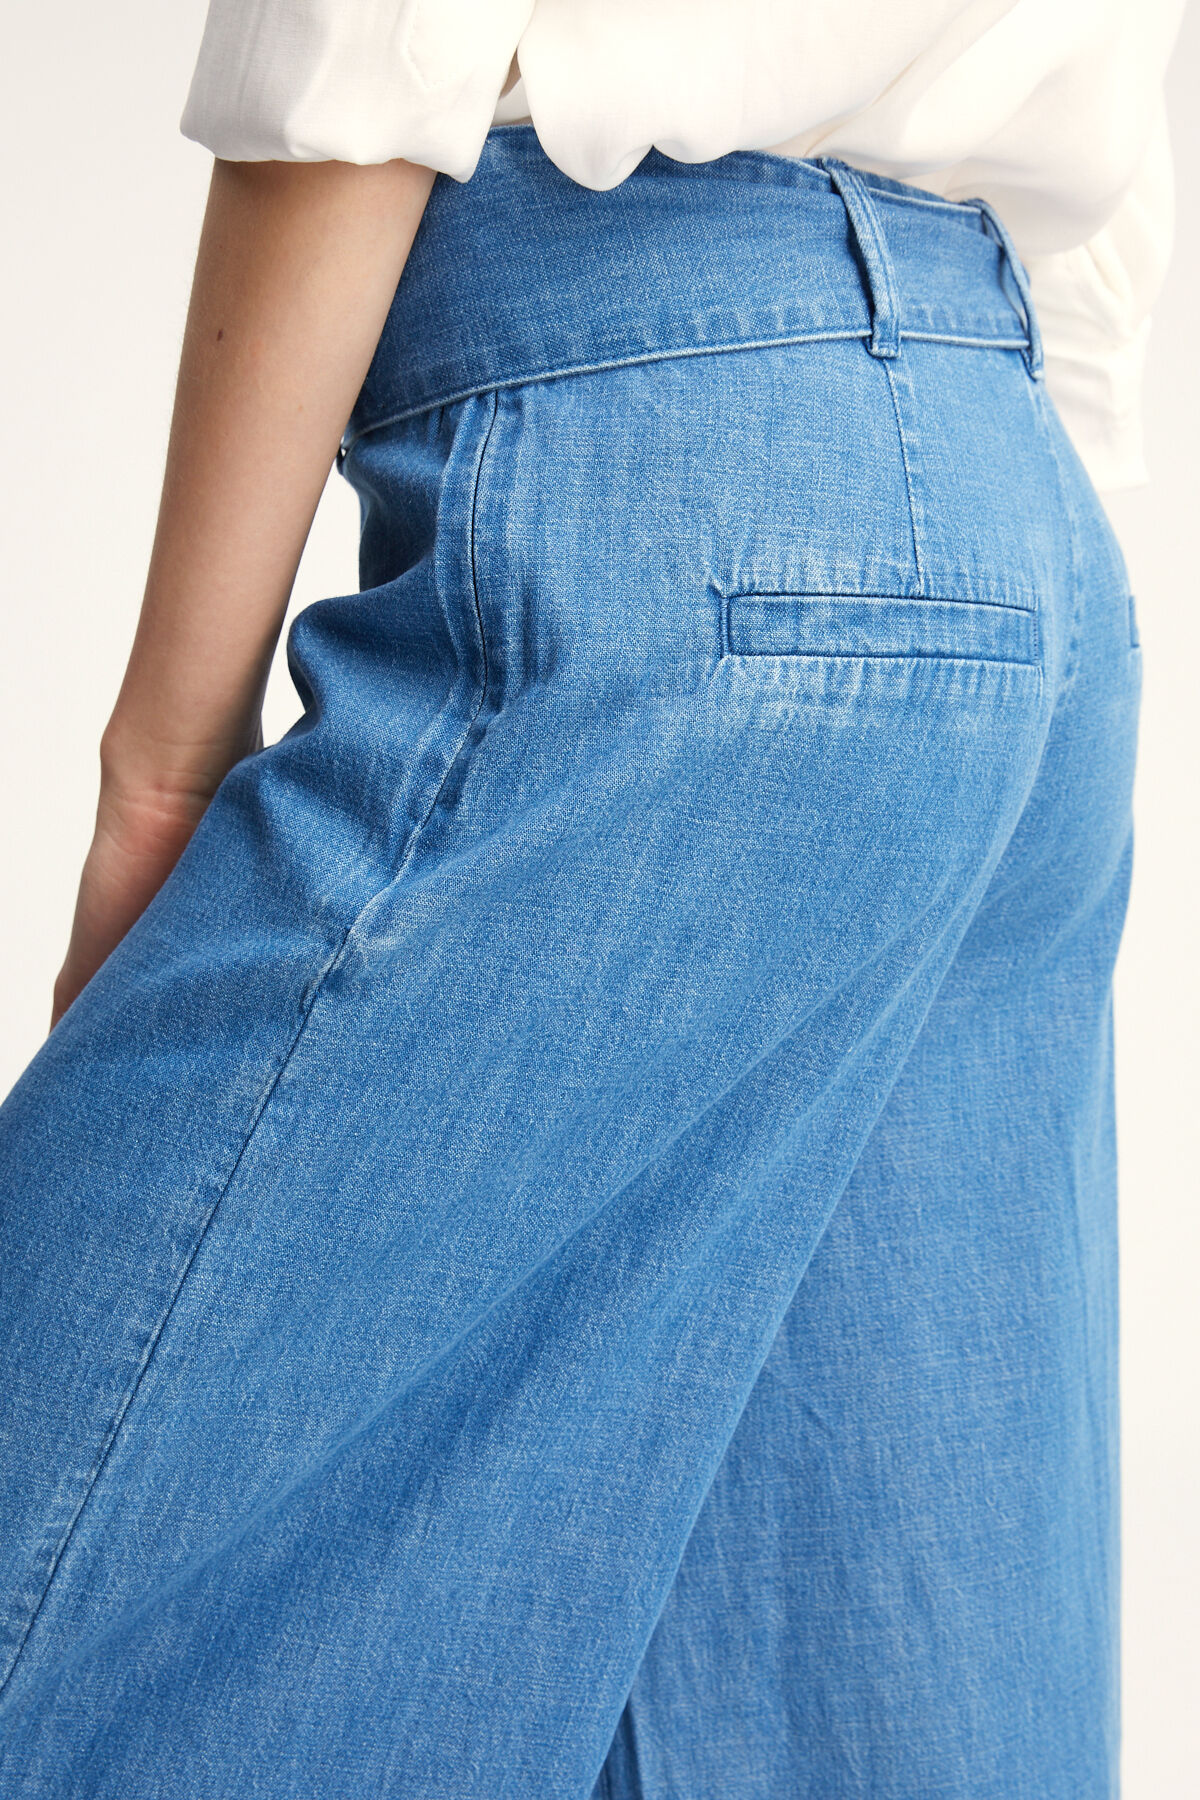 PALAZZO Light Wash Indigo Denim - Wide Leg